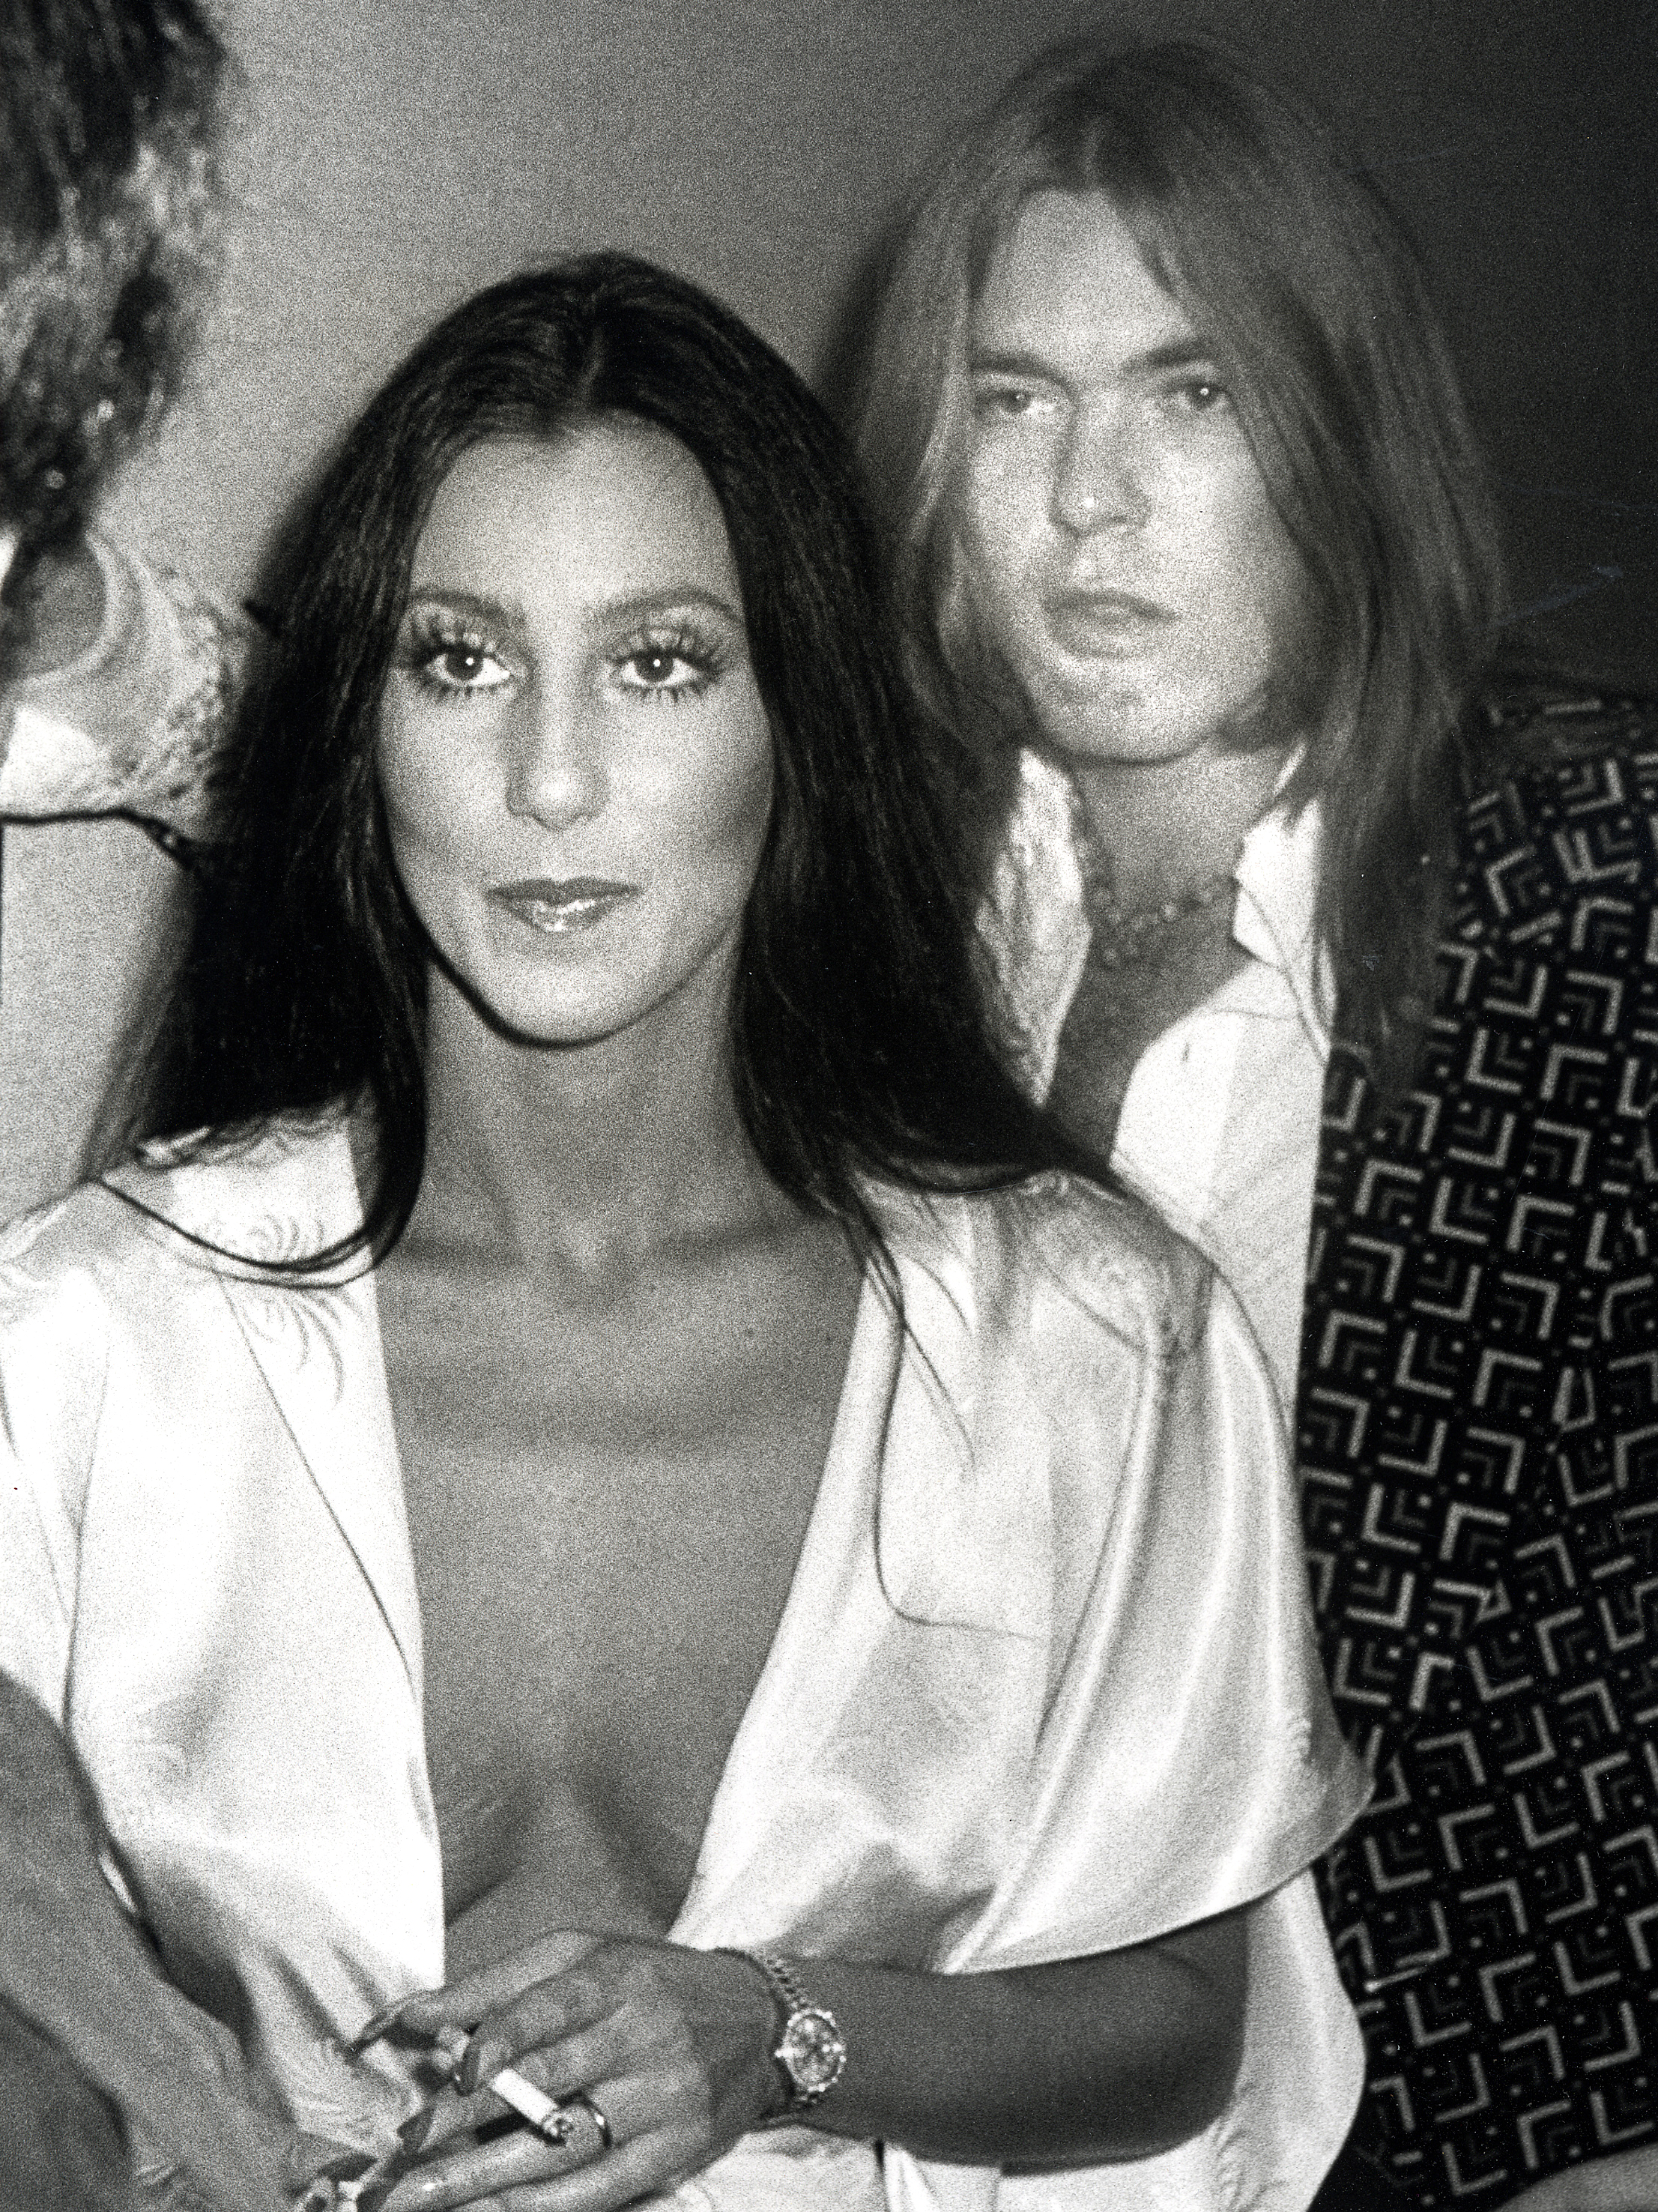 Cher Through The Years - Cher married Gregg Allman from The Allman Brothers Band four days after finalizing her divorce from Sonny. The newlyweds released a collaborative album, Two the Hard Way , in November 1977, but broke up soon after.